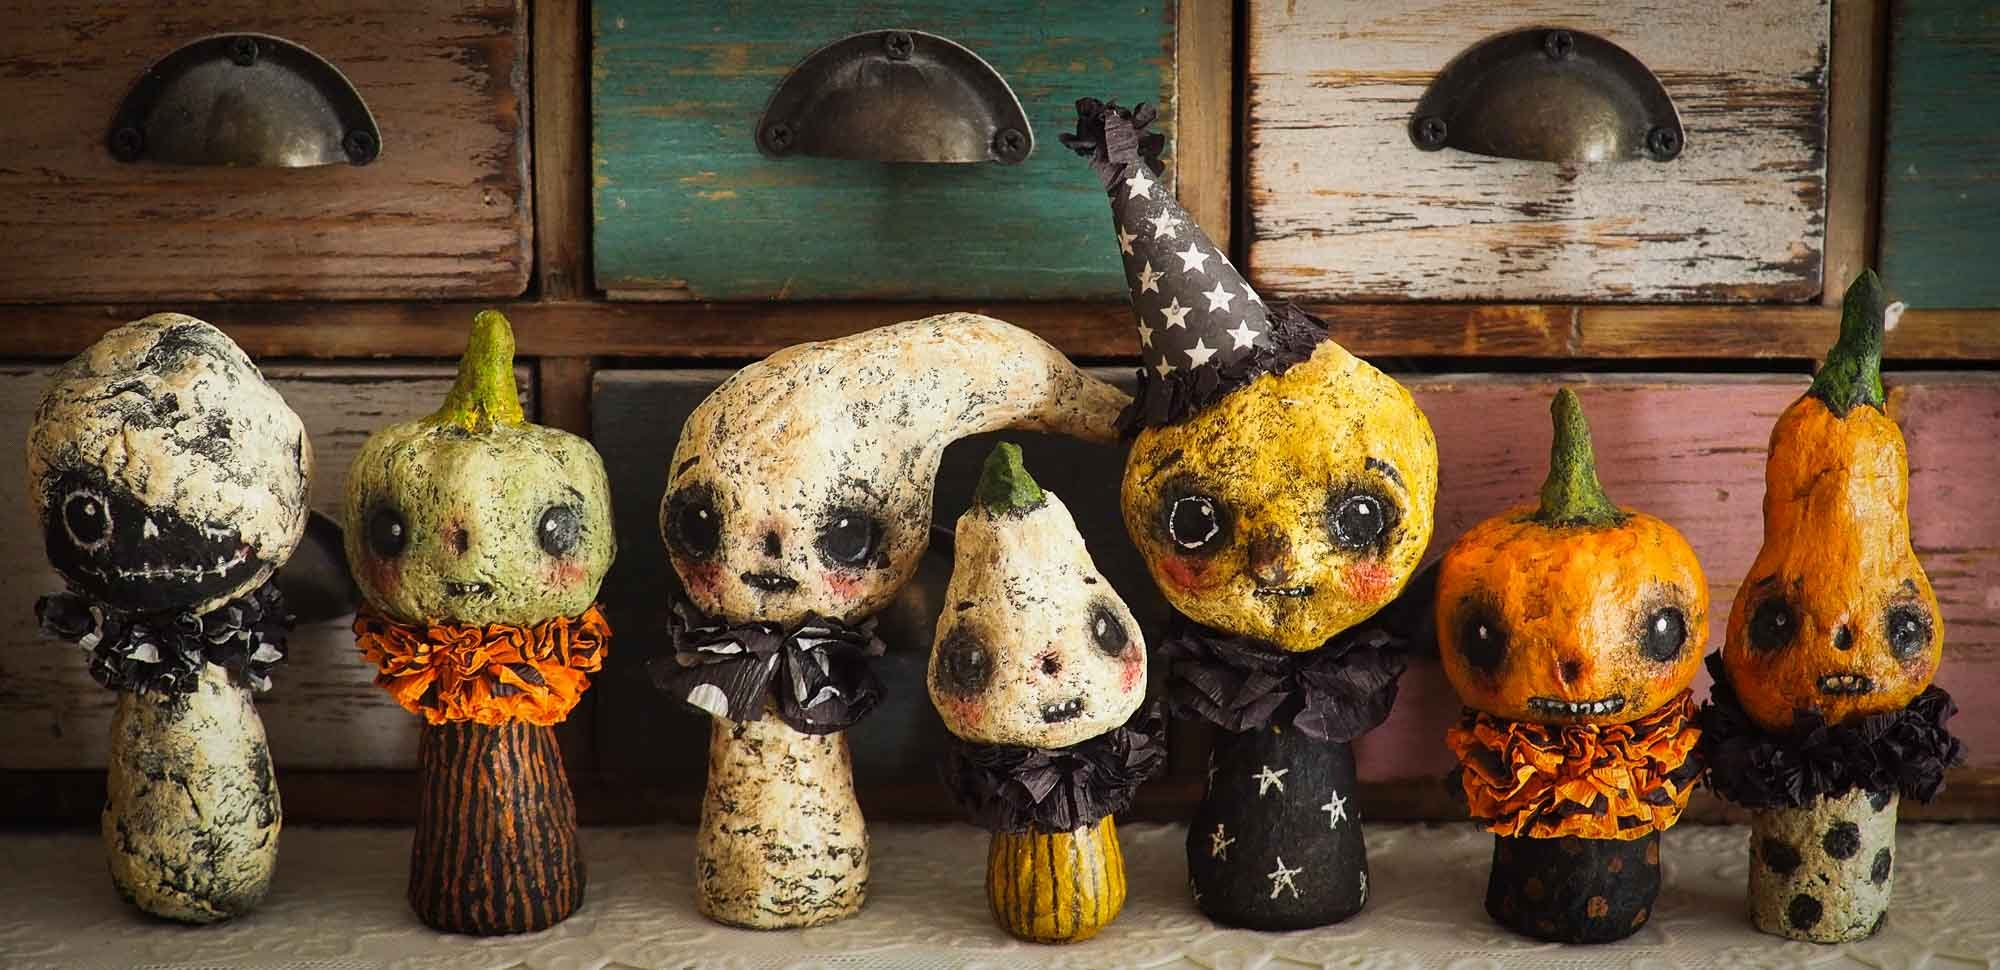 Kokeshi kawaii mini dolls Halloween by Danita Art. Ghosts, Wizards, Witches, Warlocks, Ghouls, pumpkins and jack-o-lanterns created by Danita Art for your Halloween Home decor decorations in handmade crafts art style.